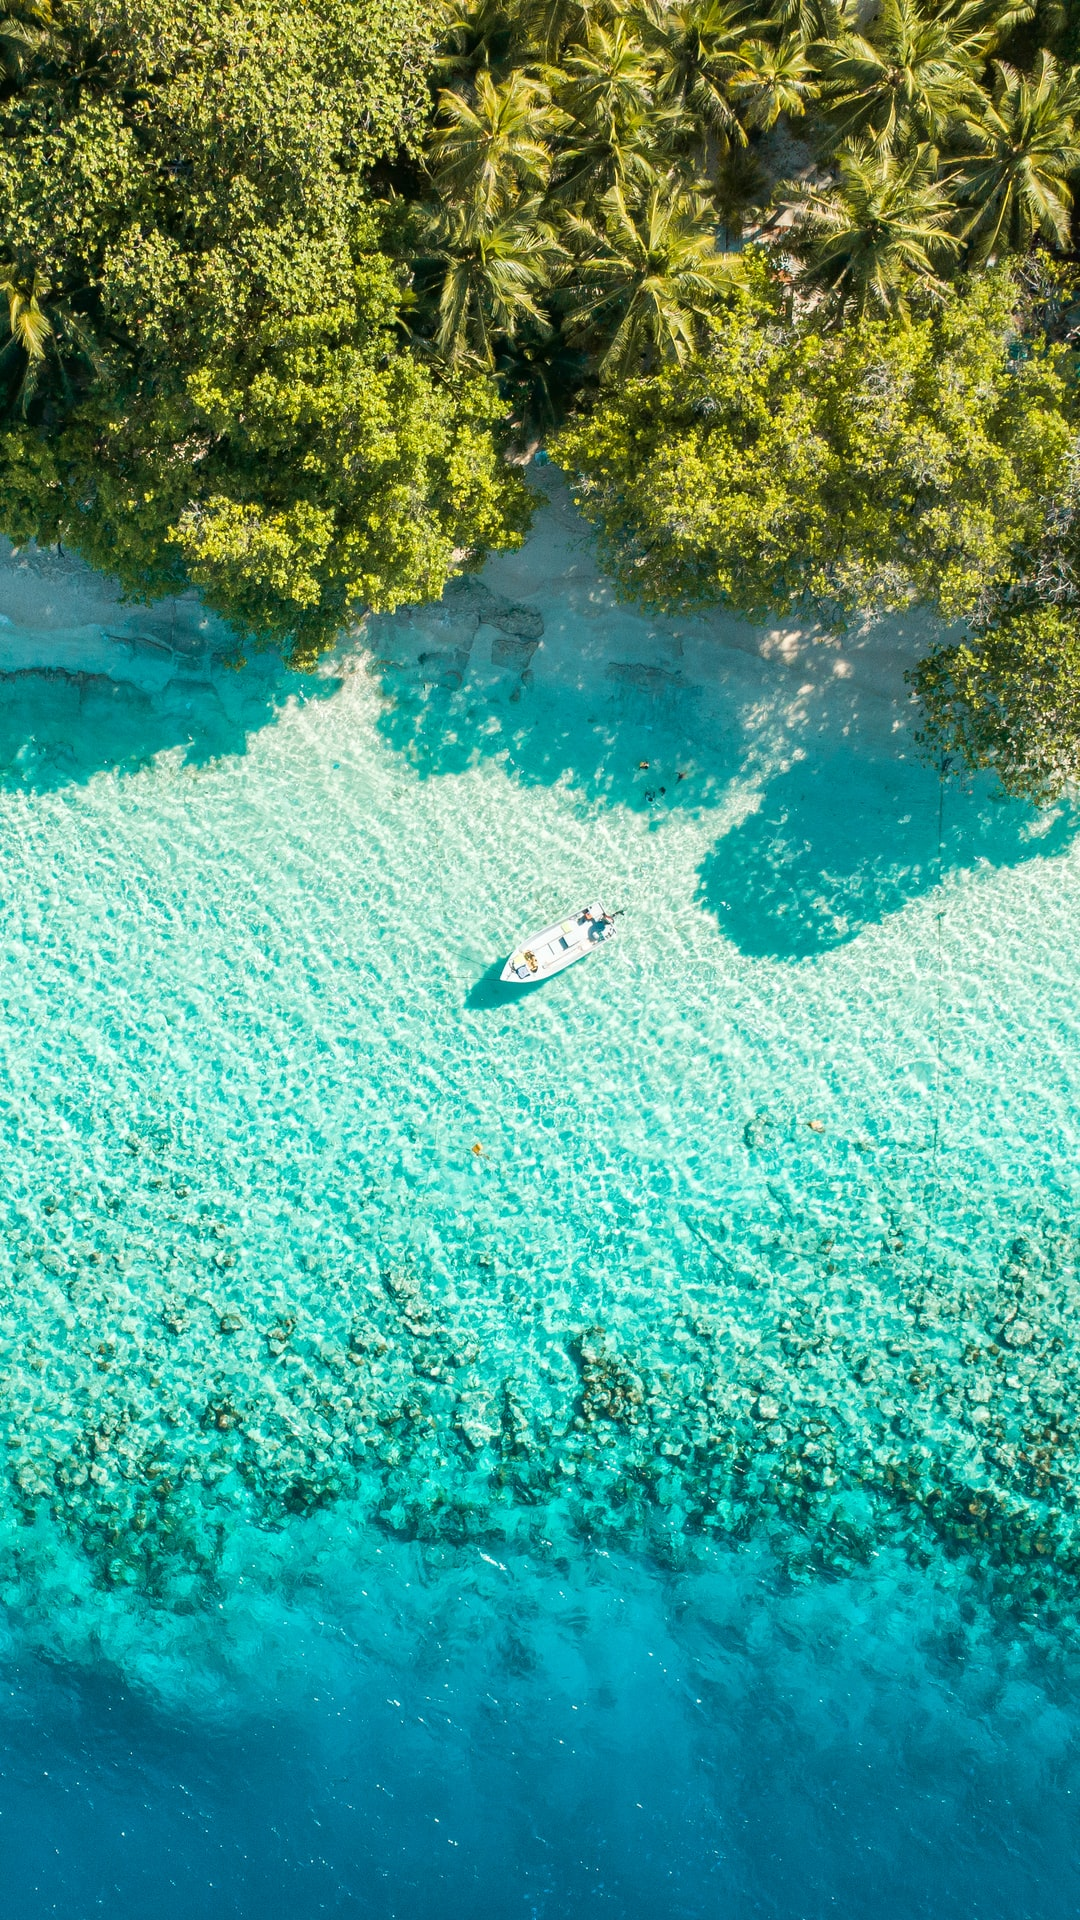 """See the beauty of B.Kendhoo a.k.a """"United Kendhoo - UK"""" with pristine blue lagoon and lofty palms 😍🌴"""